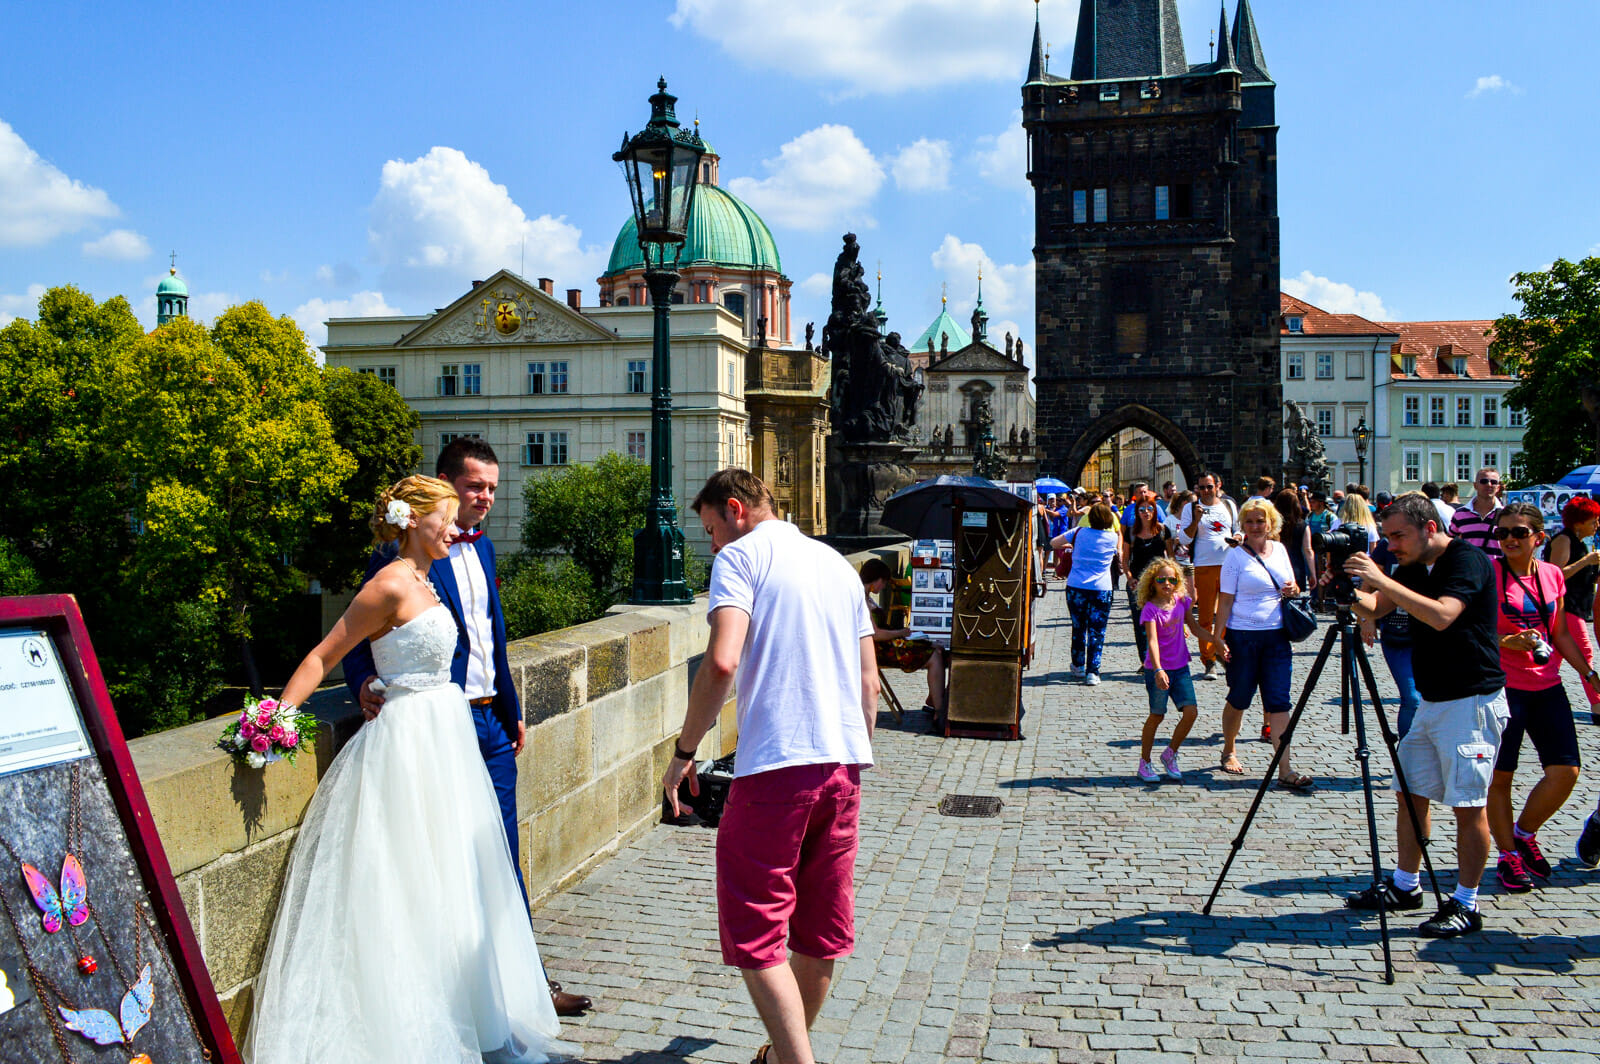 Romance at Charles Bridge in Prague